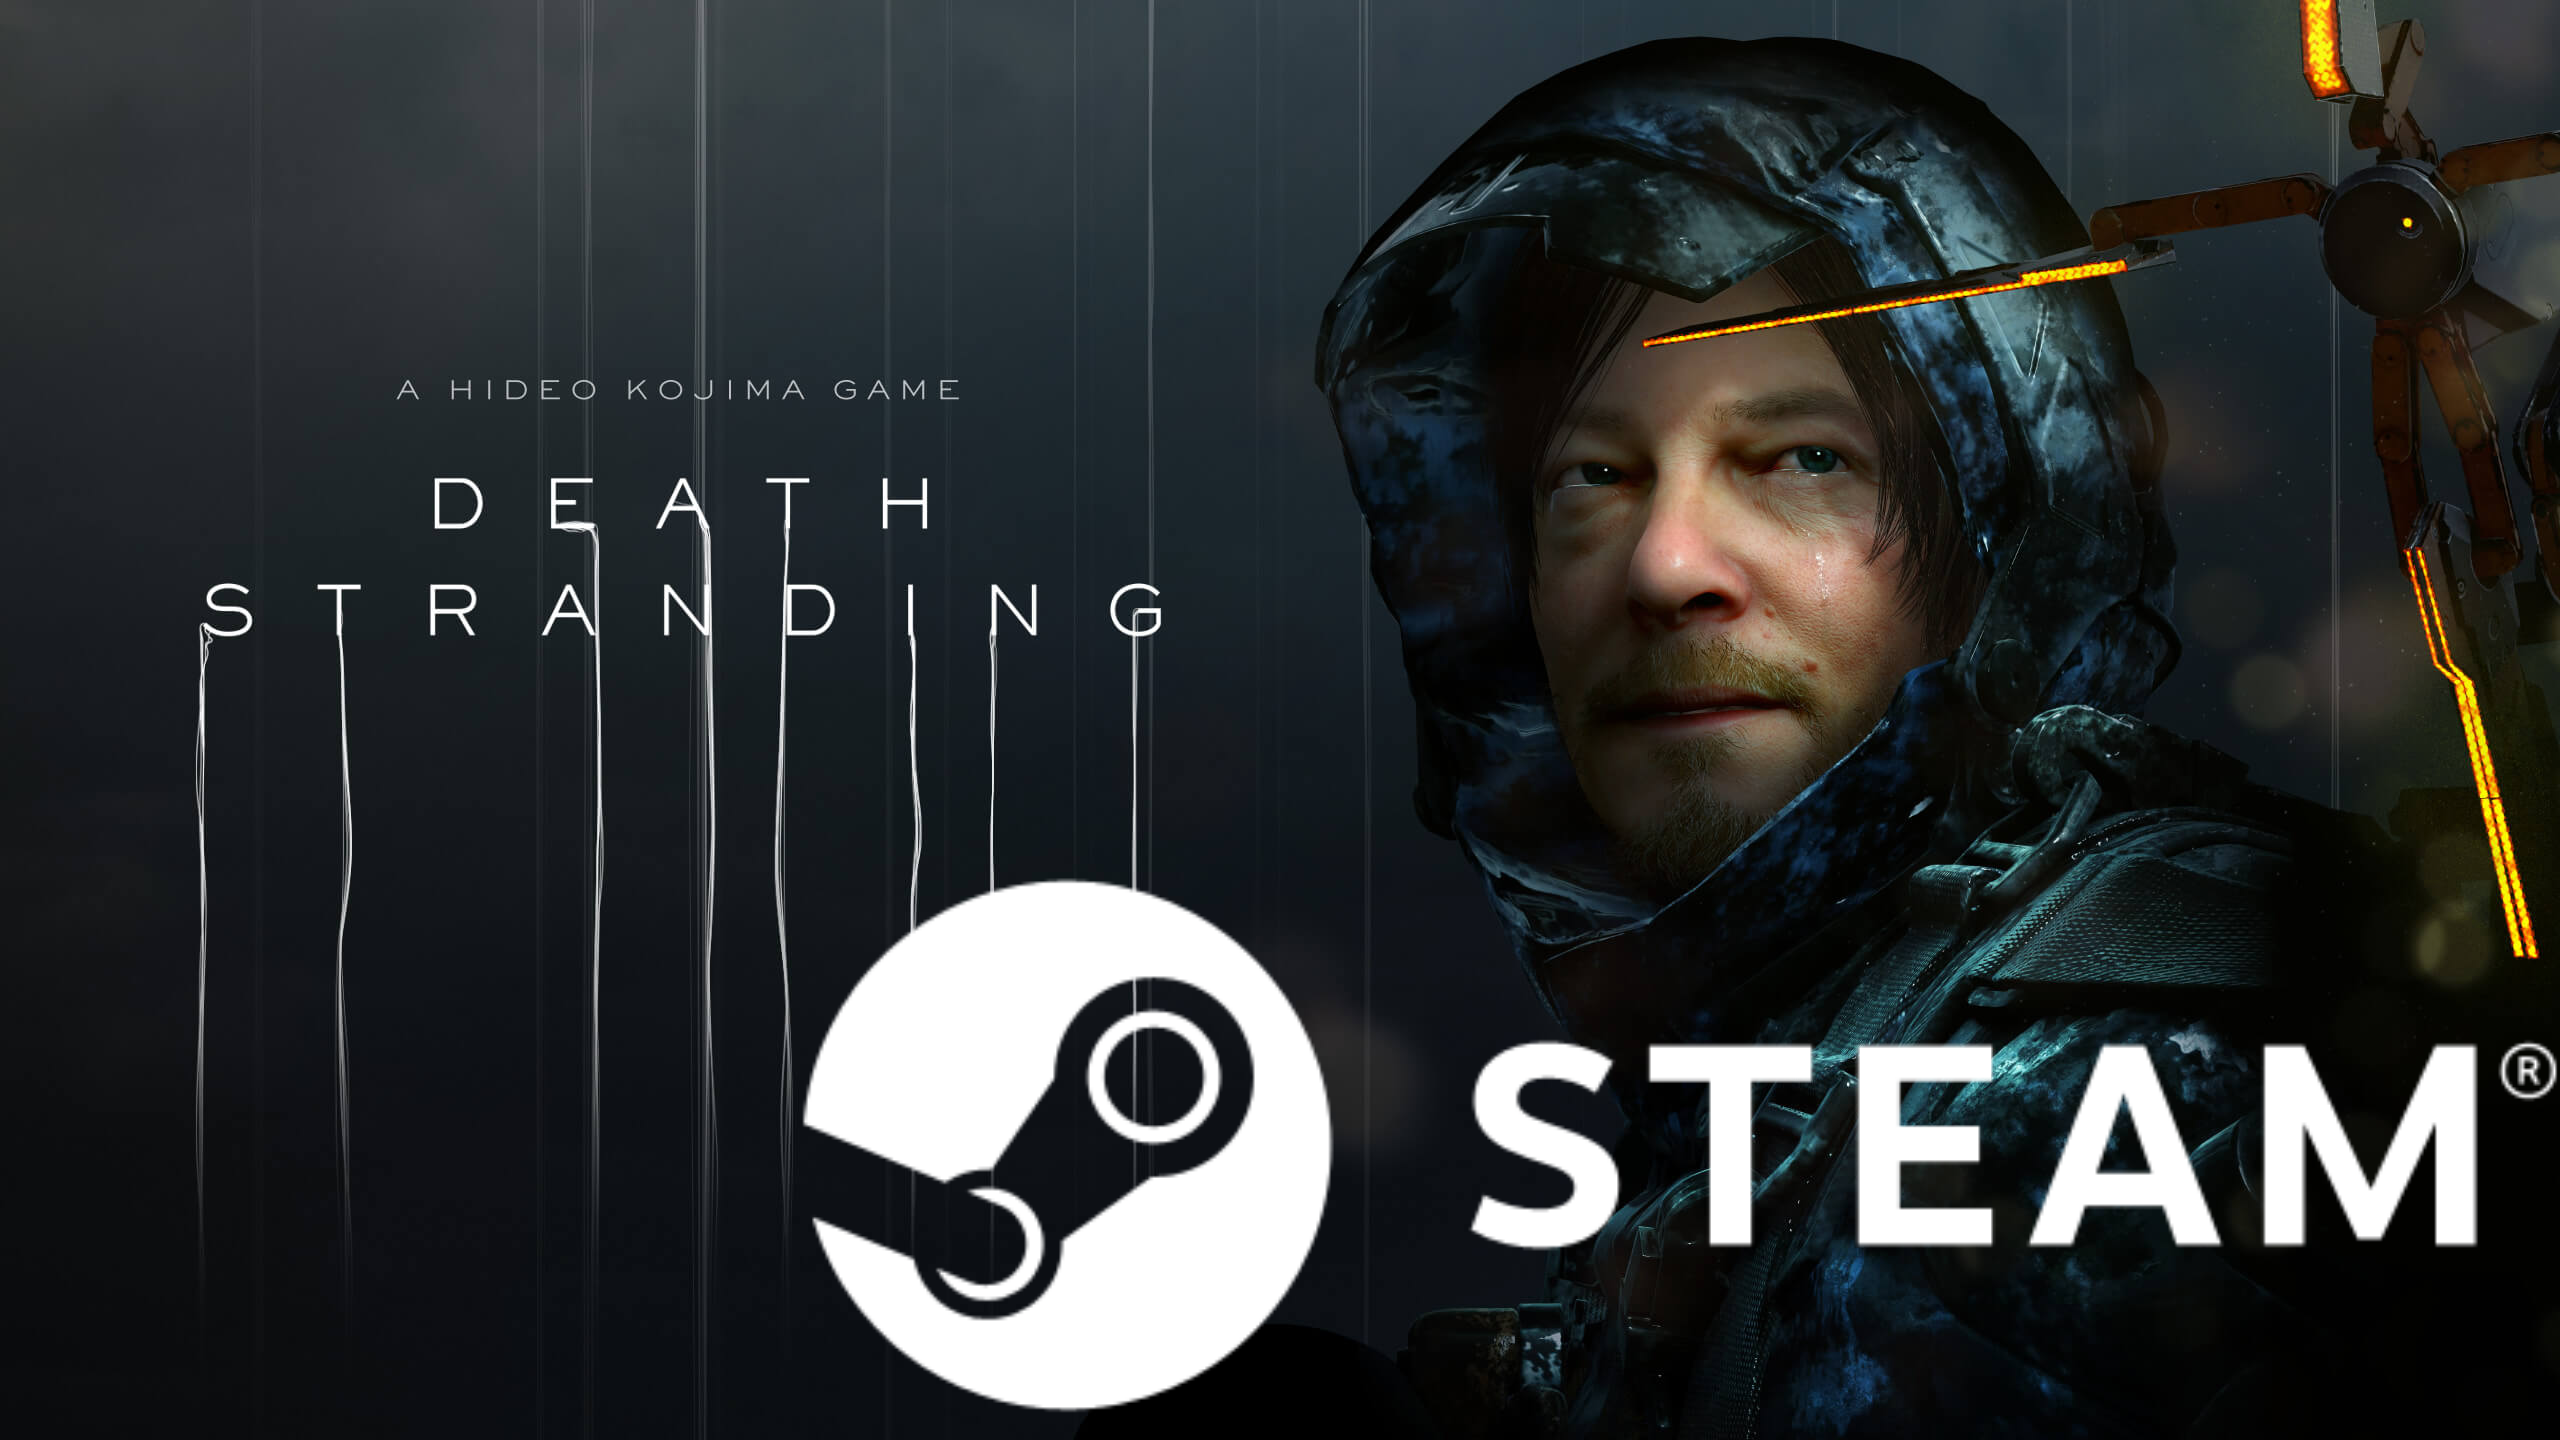 ⭐️ DEATH STRANDING + DLC - STEAM (Region free)